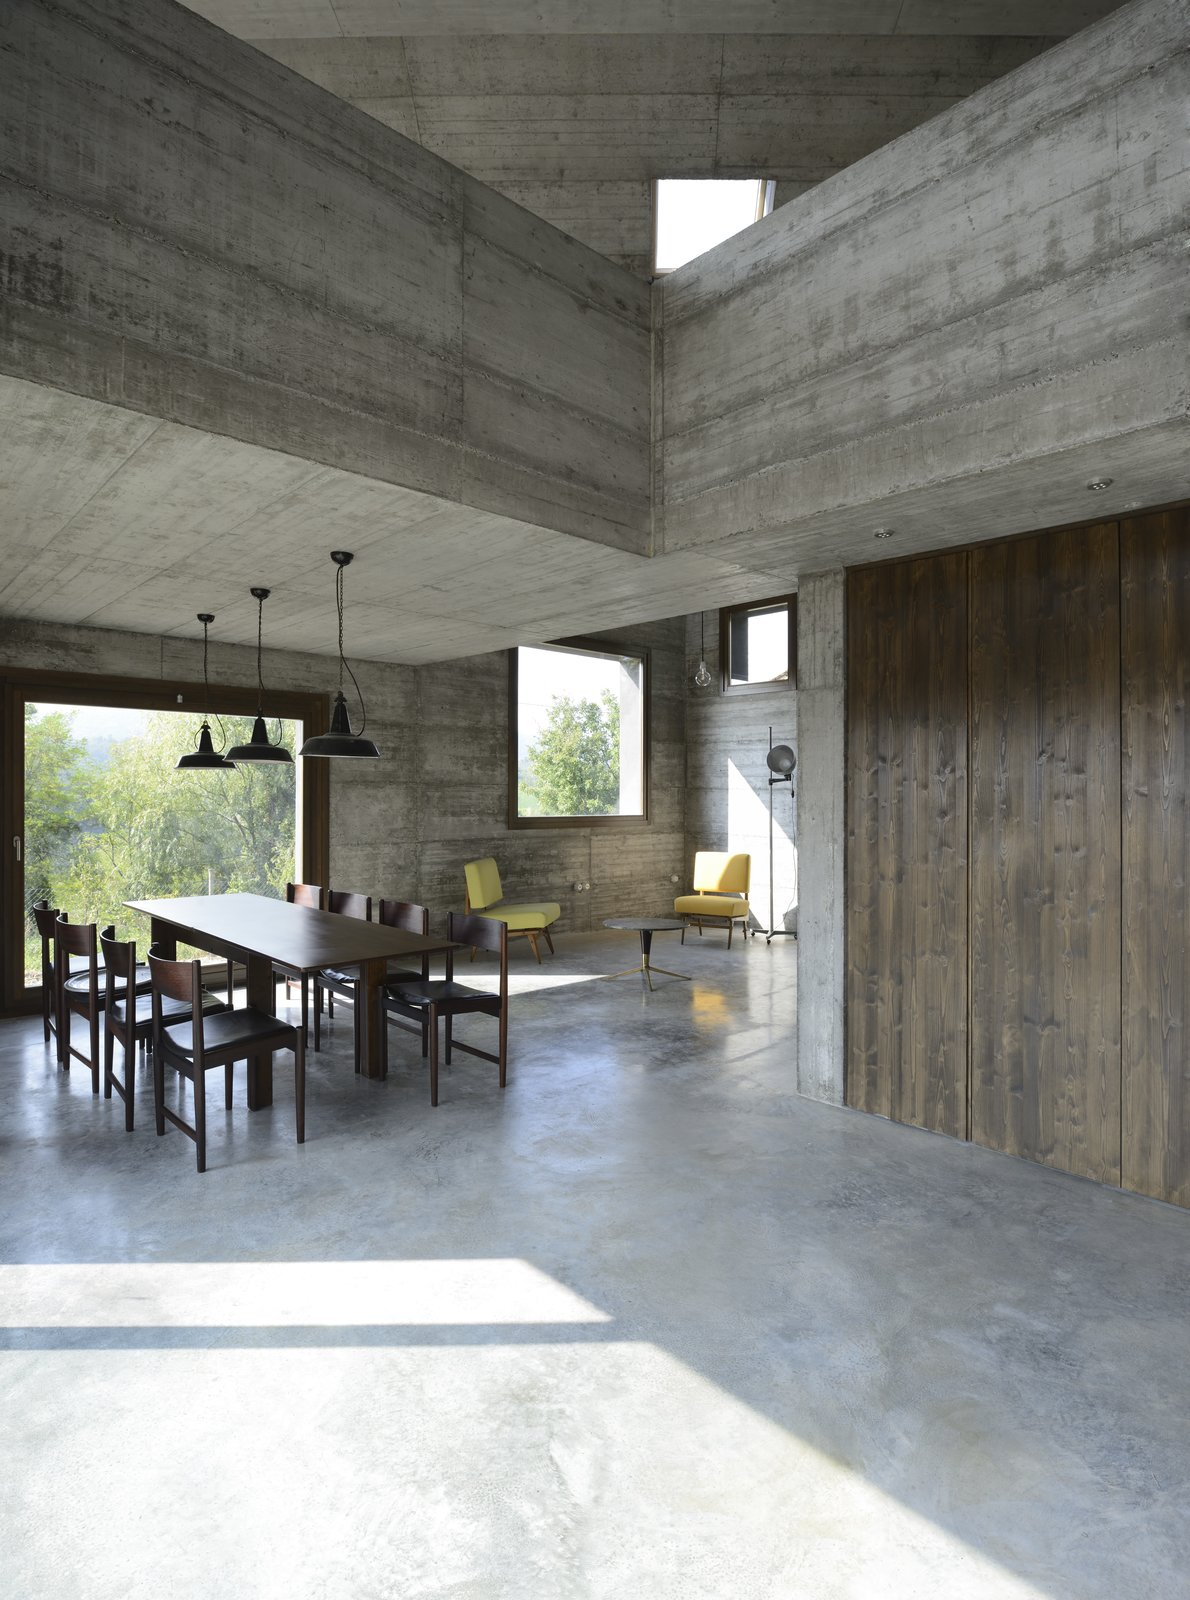 A Concrete Hideaway in the Italian Countryside